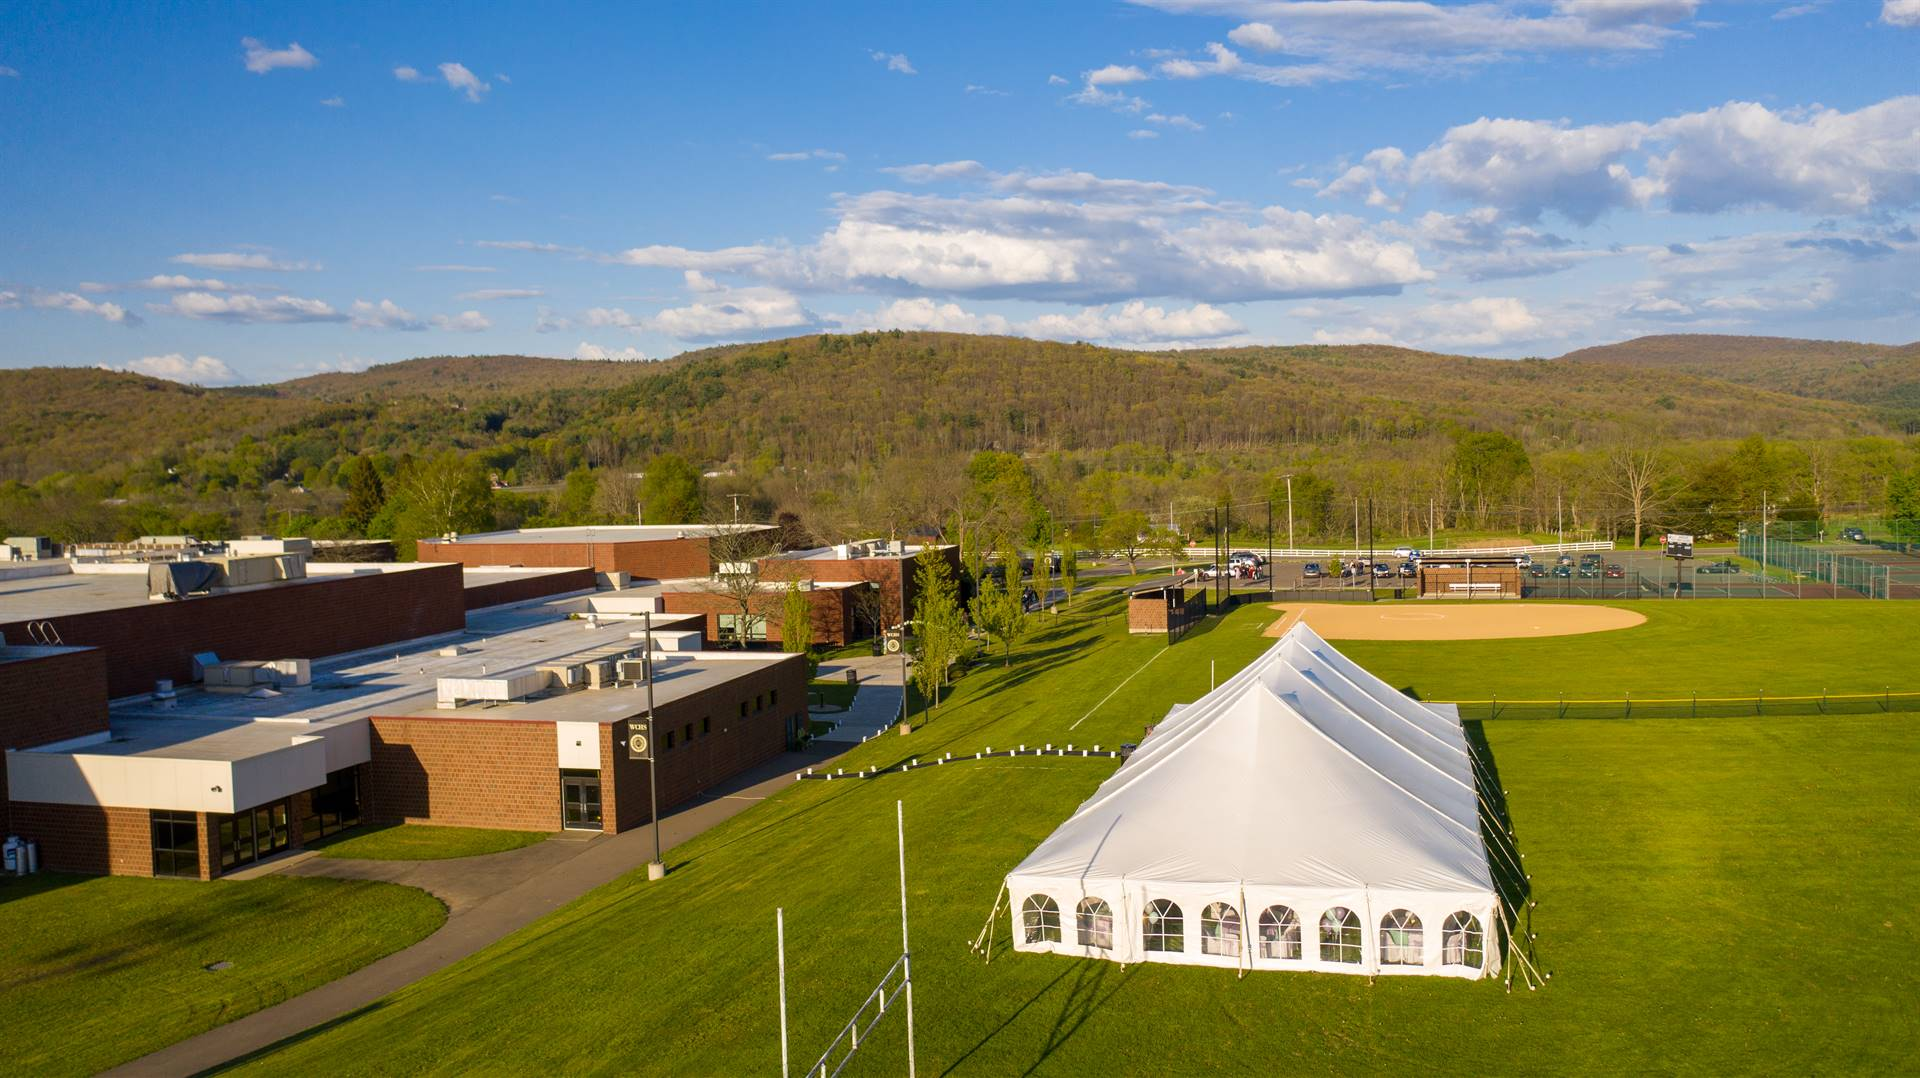 Arial view of high school and softball field with tent